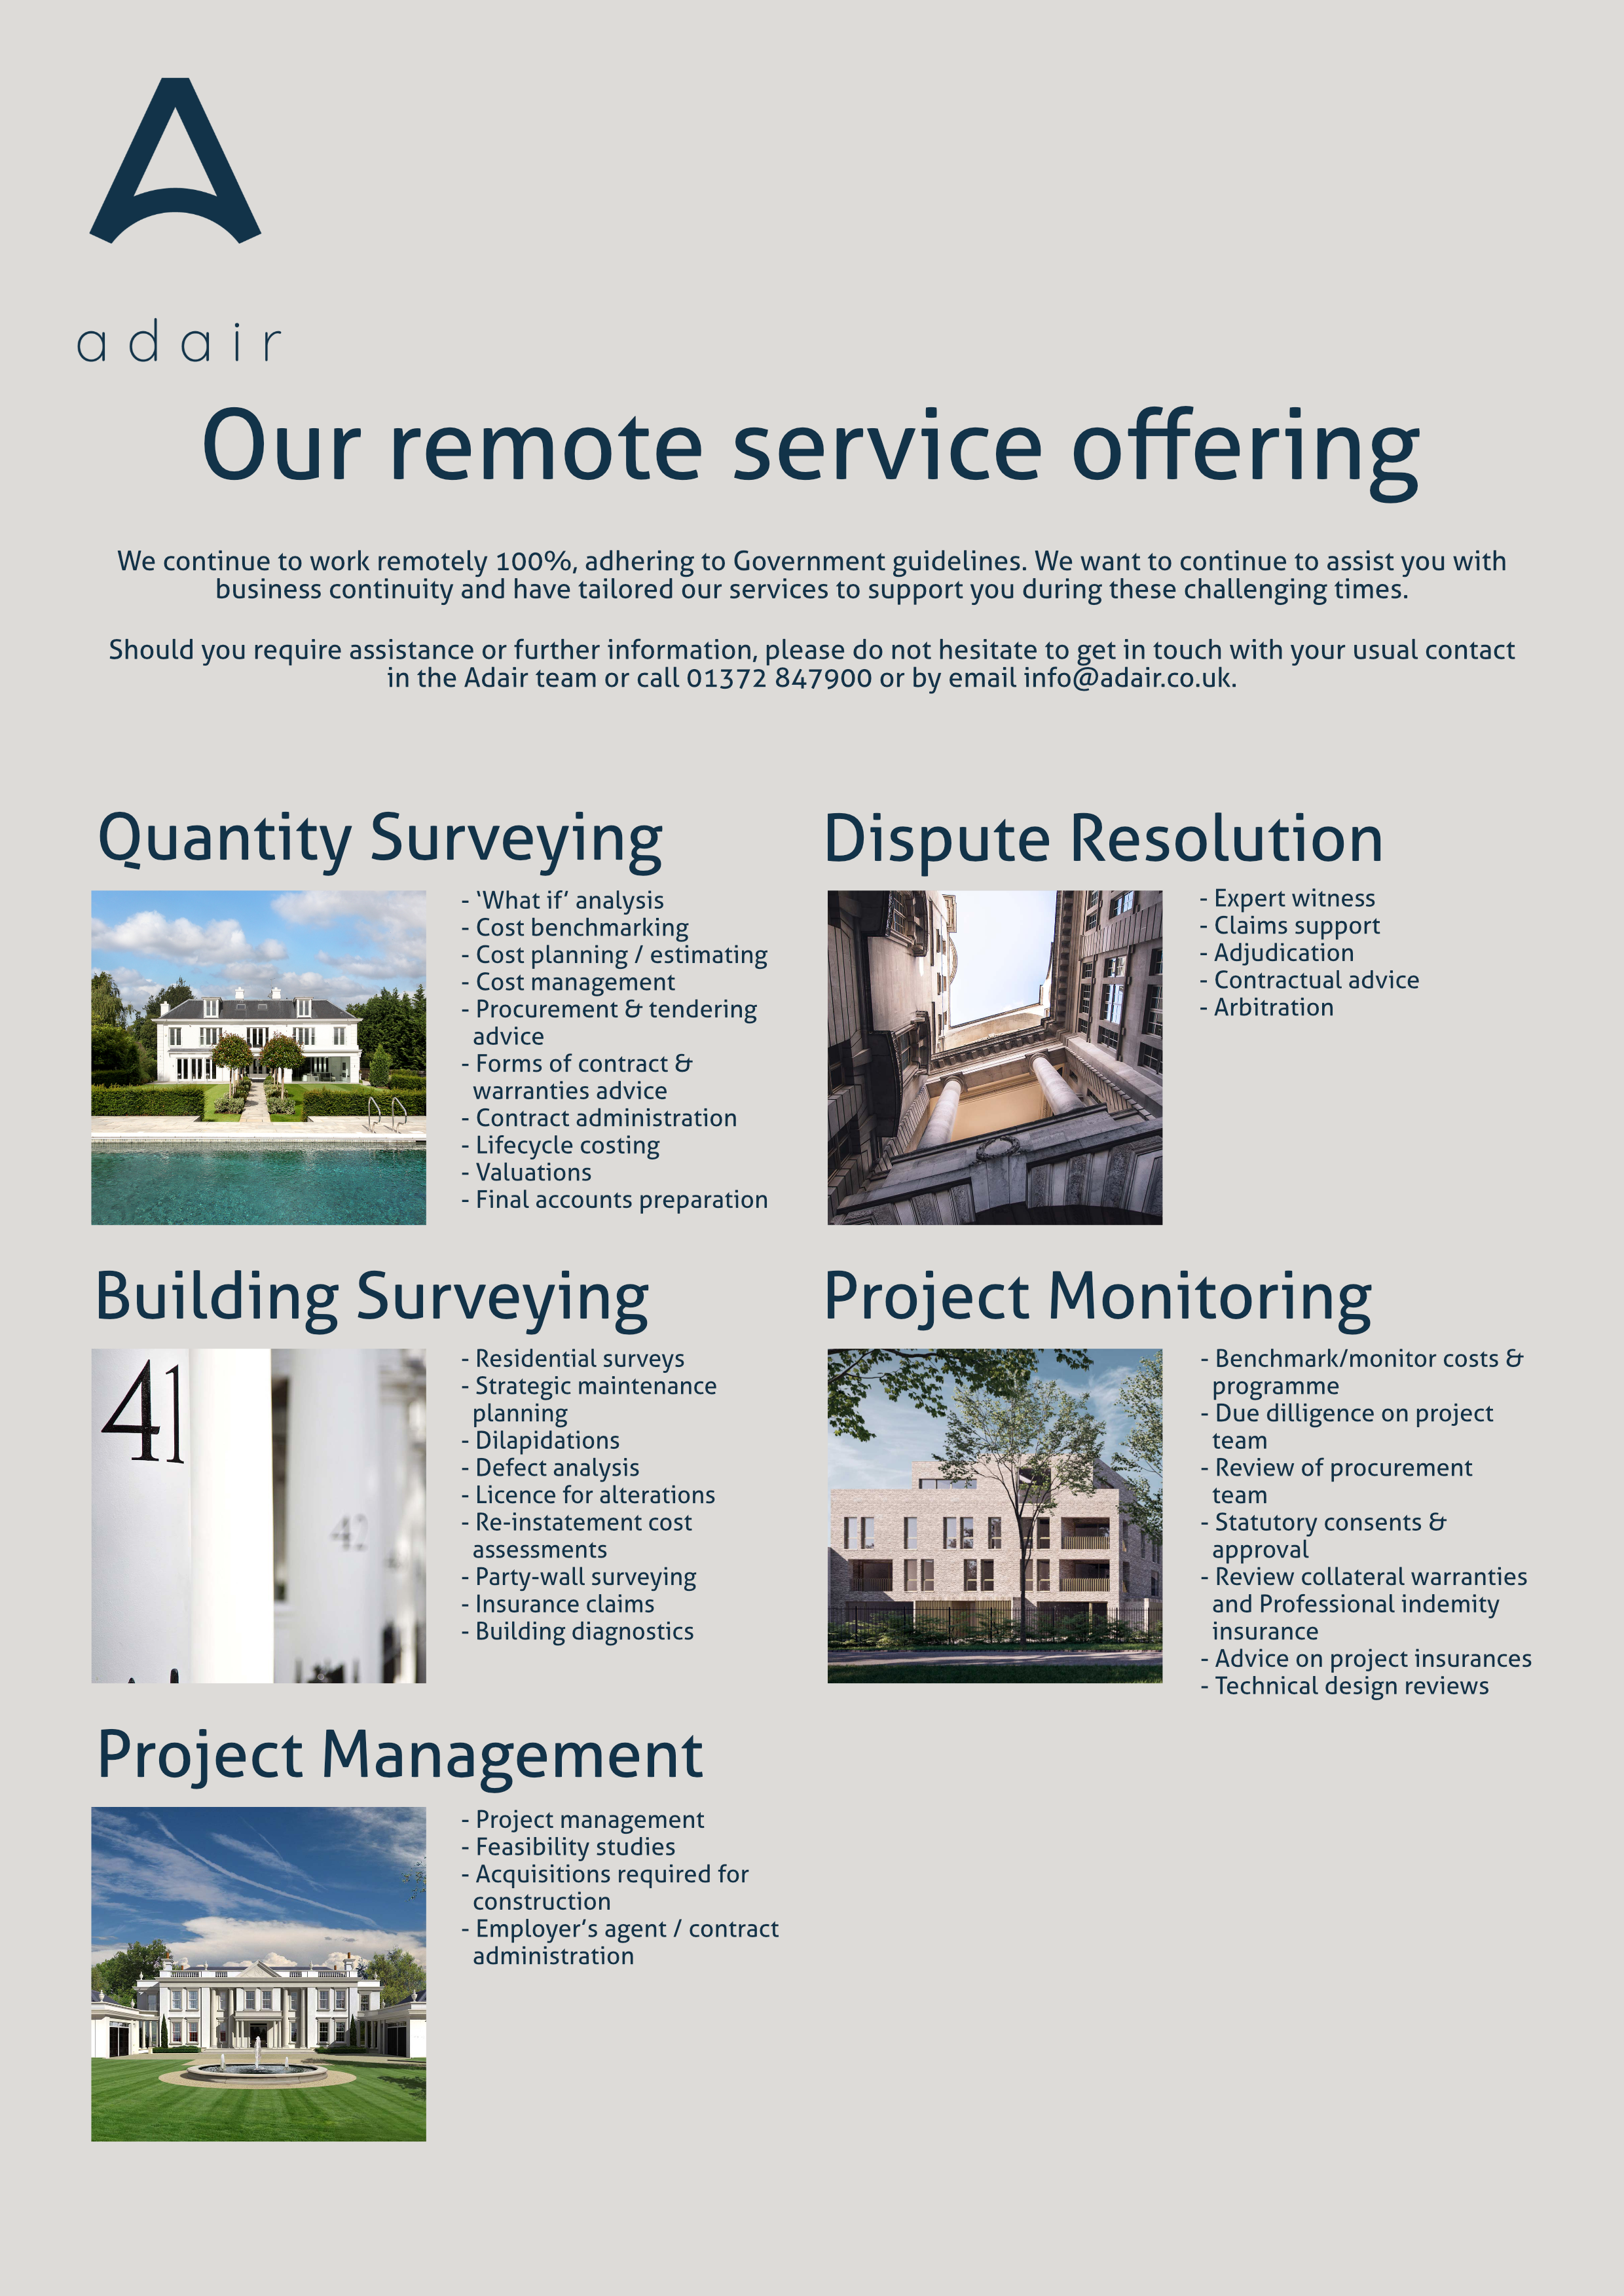 Remote service offering